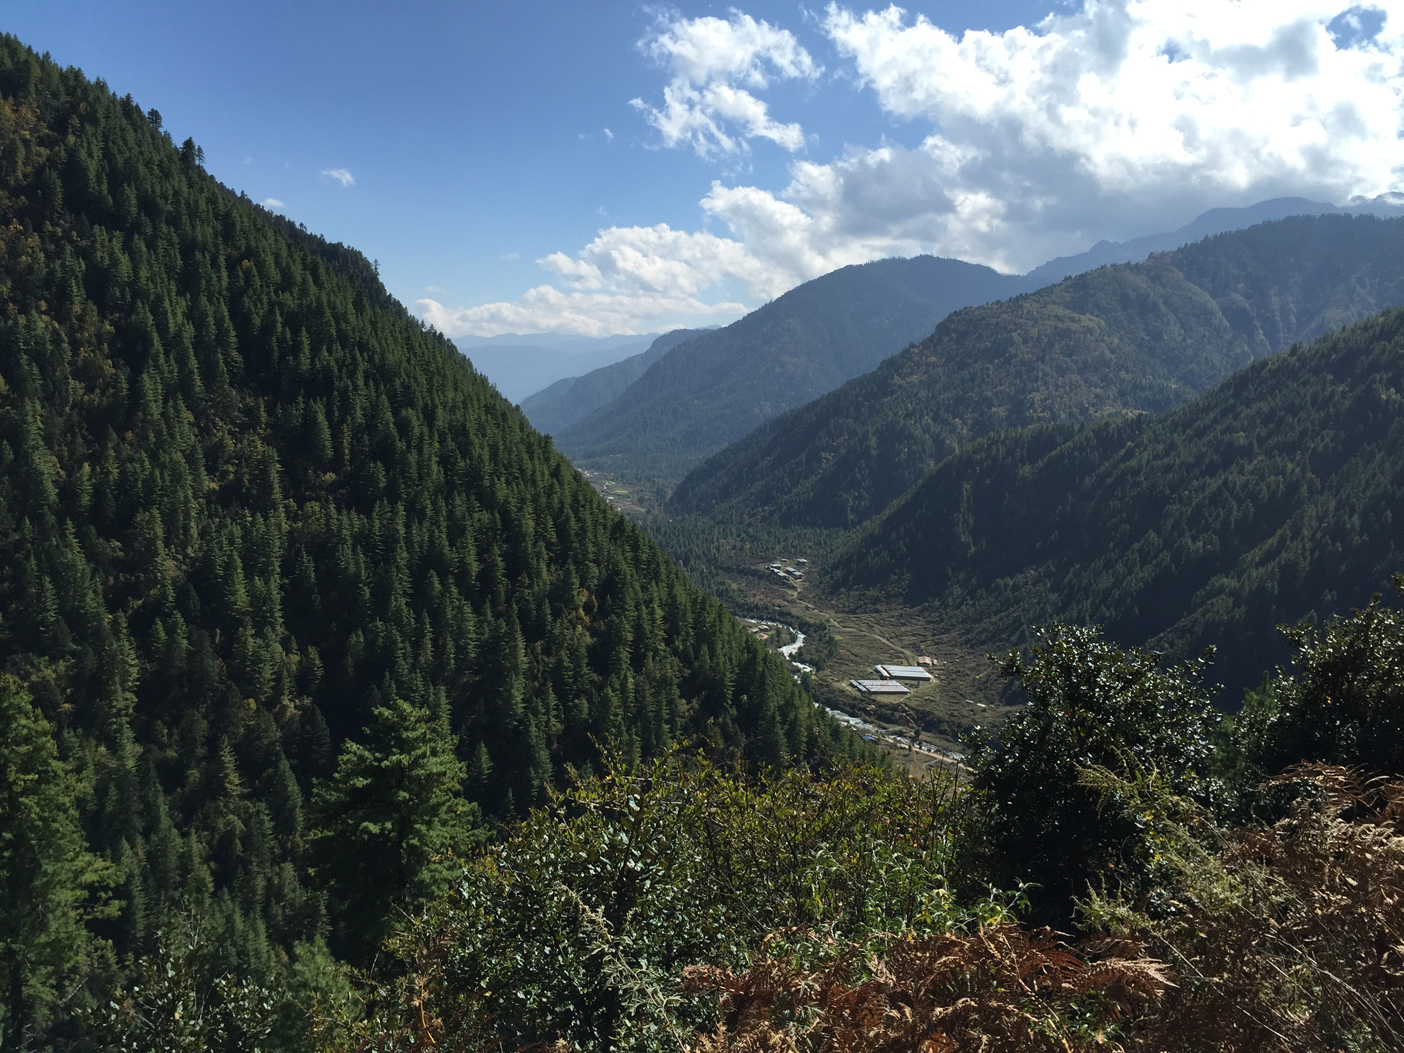 Paro River valley on the way down to last camp